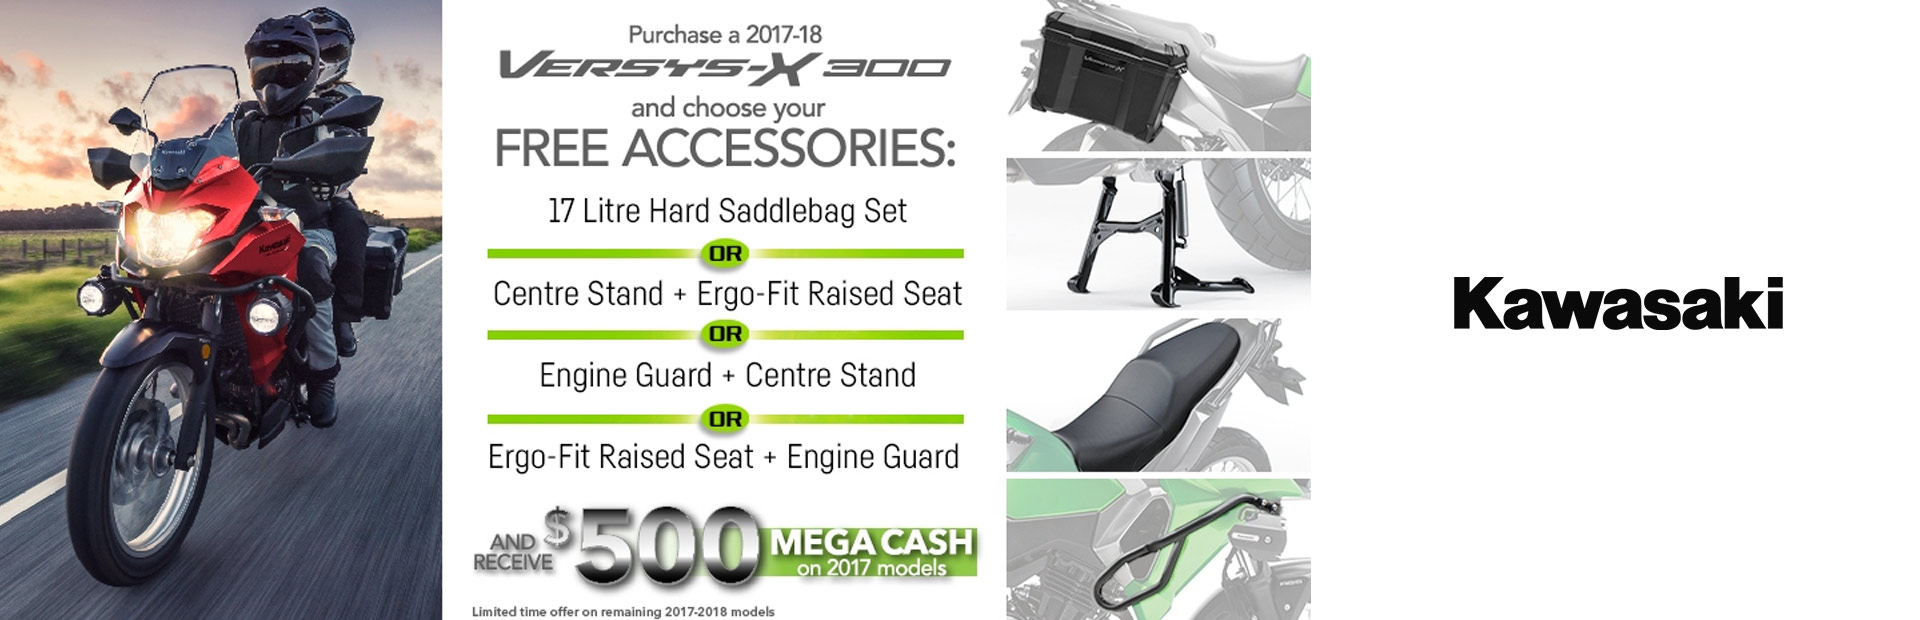 Kawasaki: Versys-X 300 Accessory AND 500 Megacash Promotion